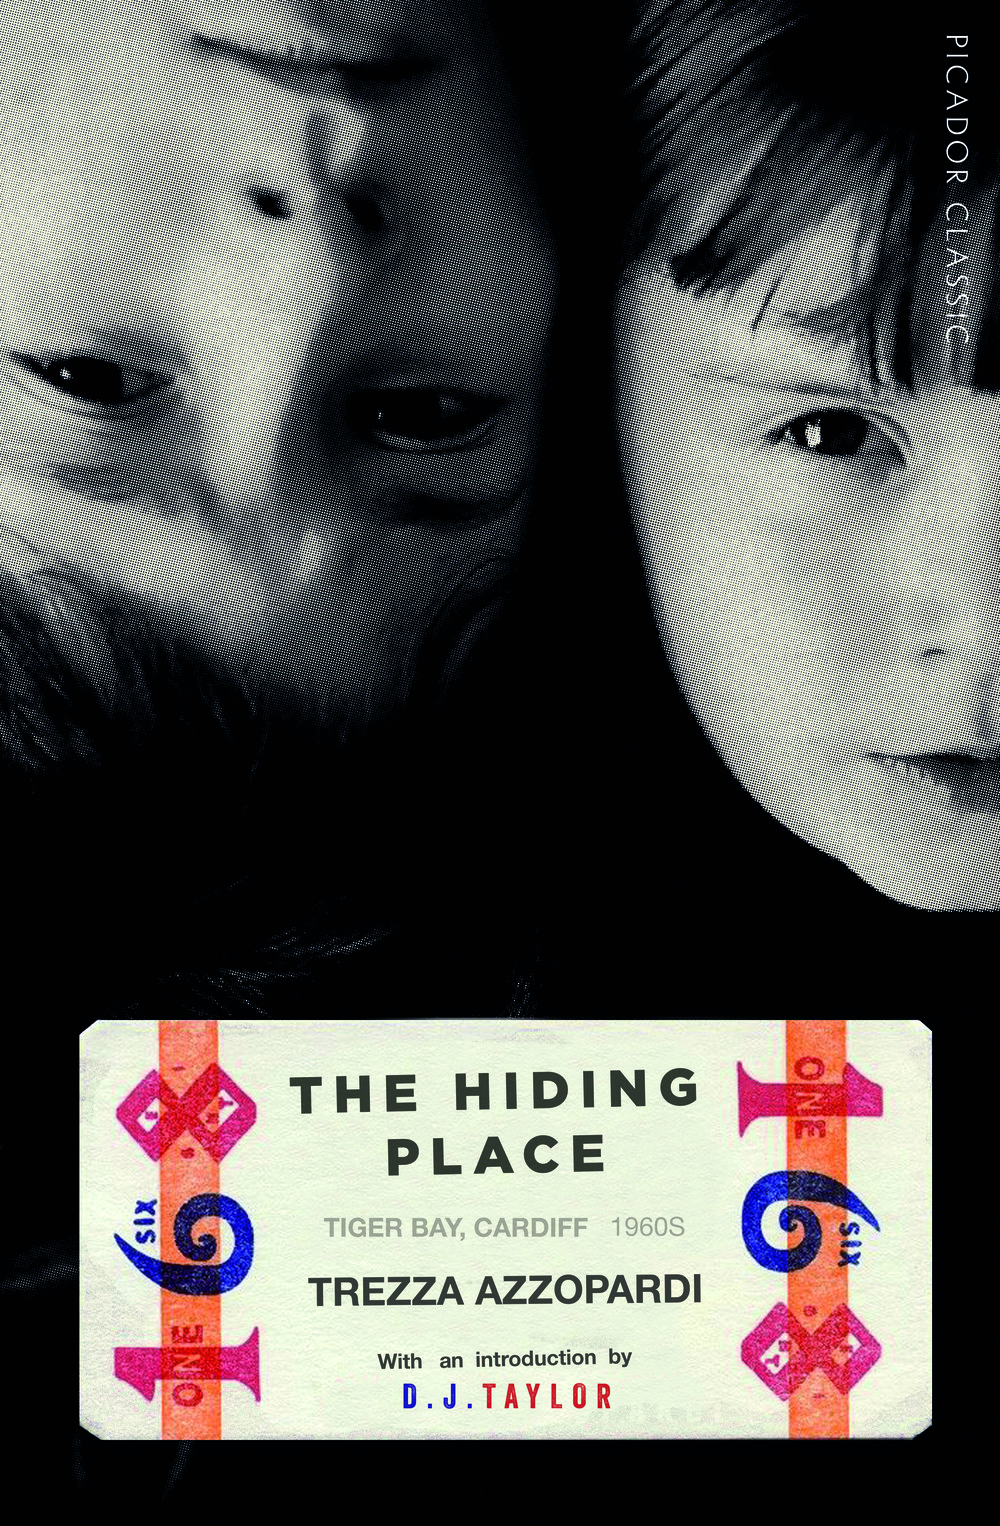 "THE HIDING PLACE Literary, 288 pages Picador, 2001 A finalist for the prestigious Man Booker Prize, The Hiding Place -- Welsh novelist Trezza Azzopardi's lyrical tale of an immigrant family in Cardiff -- has been compared to Frank McCourt's bleak, stirring memoir Angela's Ashes. But The Hiding Place need not ""hide"" behind any ready-made comparisons; Azzopardi's astonishing, tension-filled debut stands assuredly on its own as a work of tremendous power and originality."